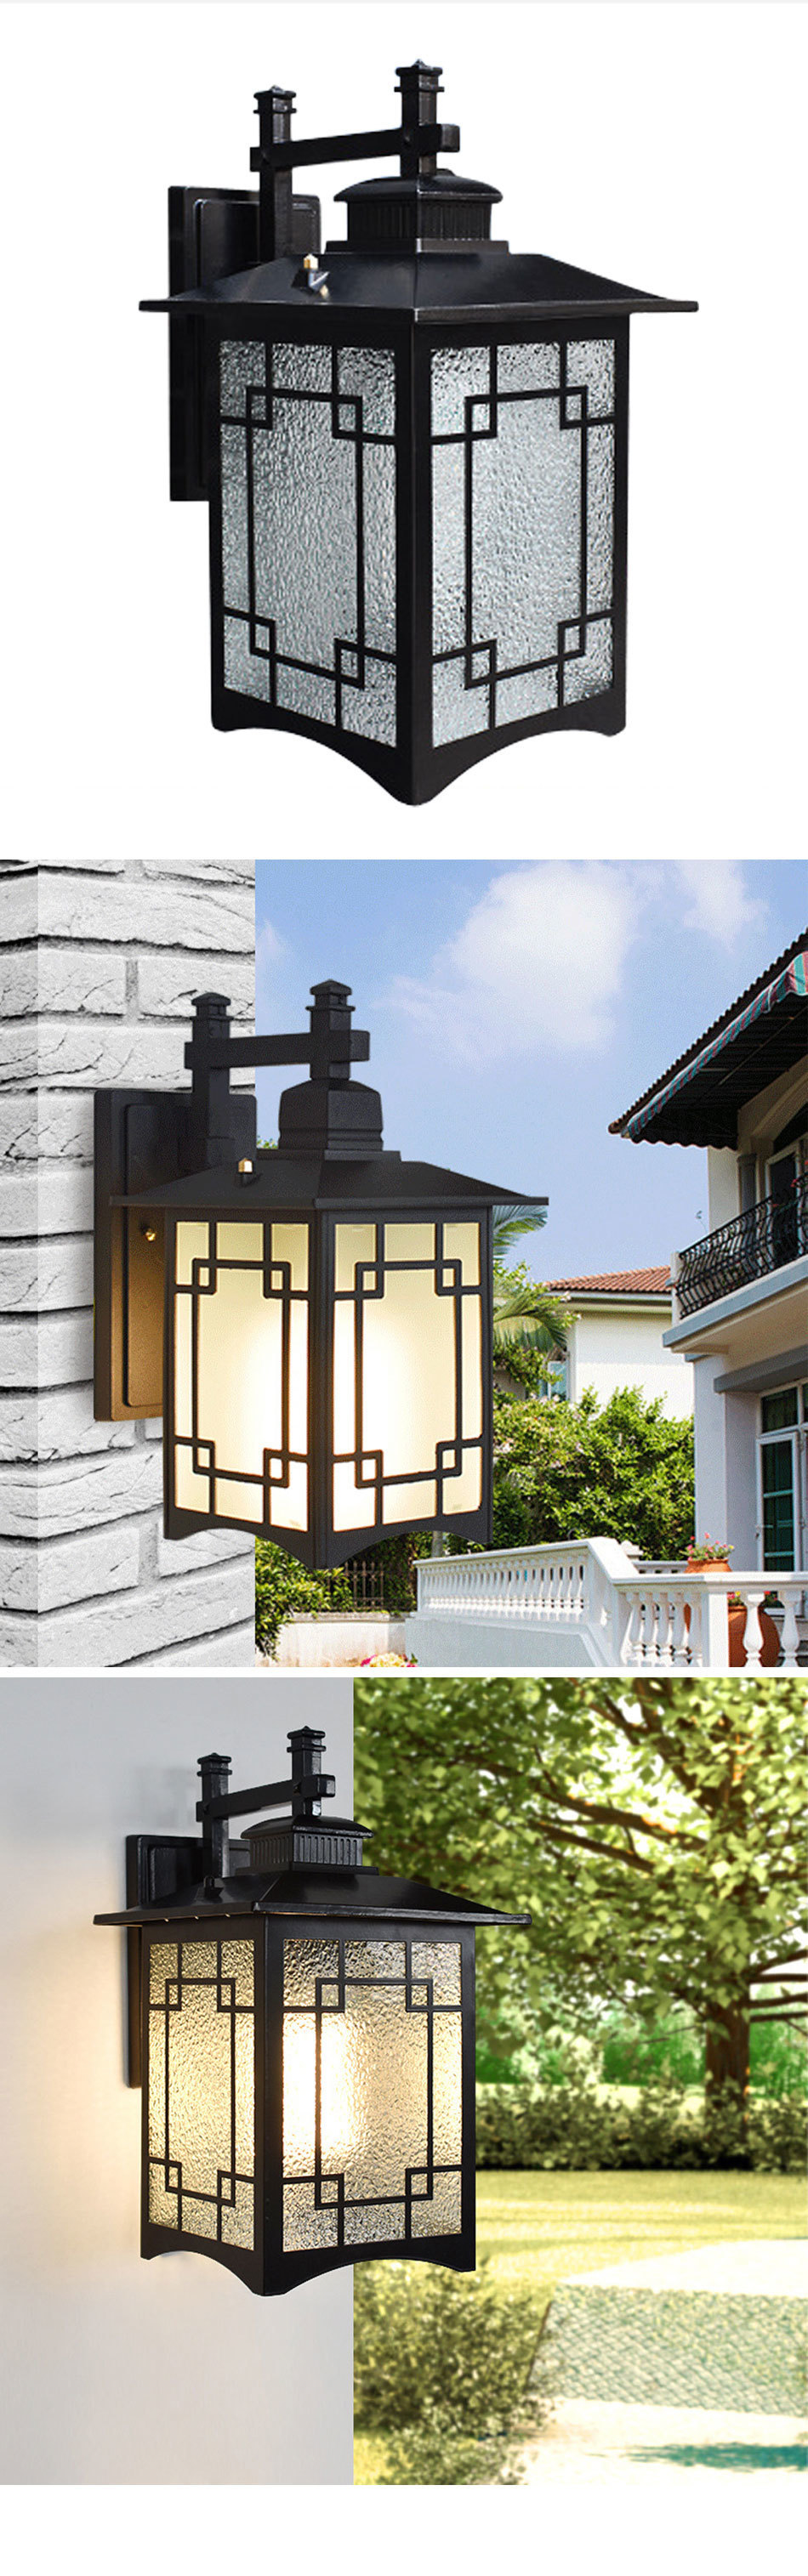 Led Wall Sconce Lamp (3)